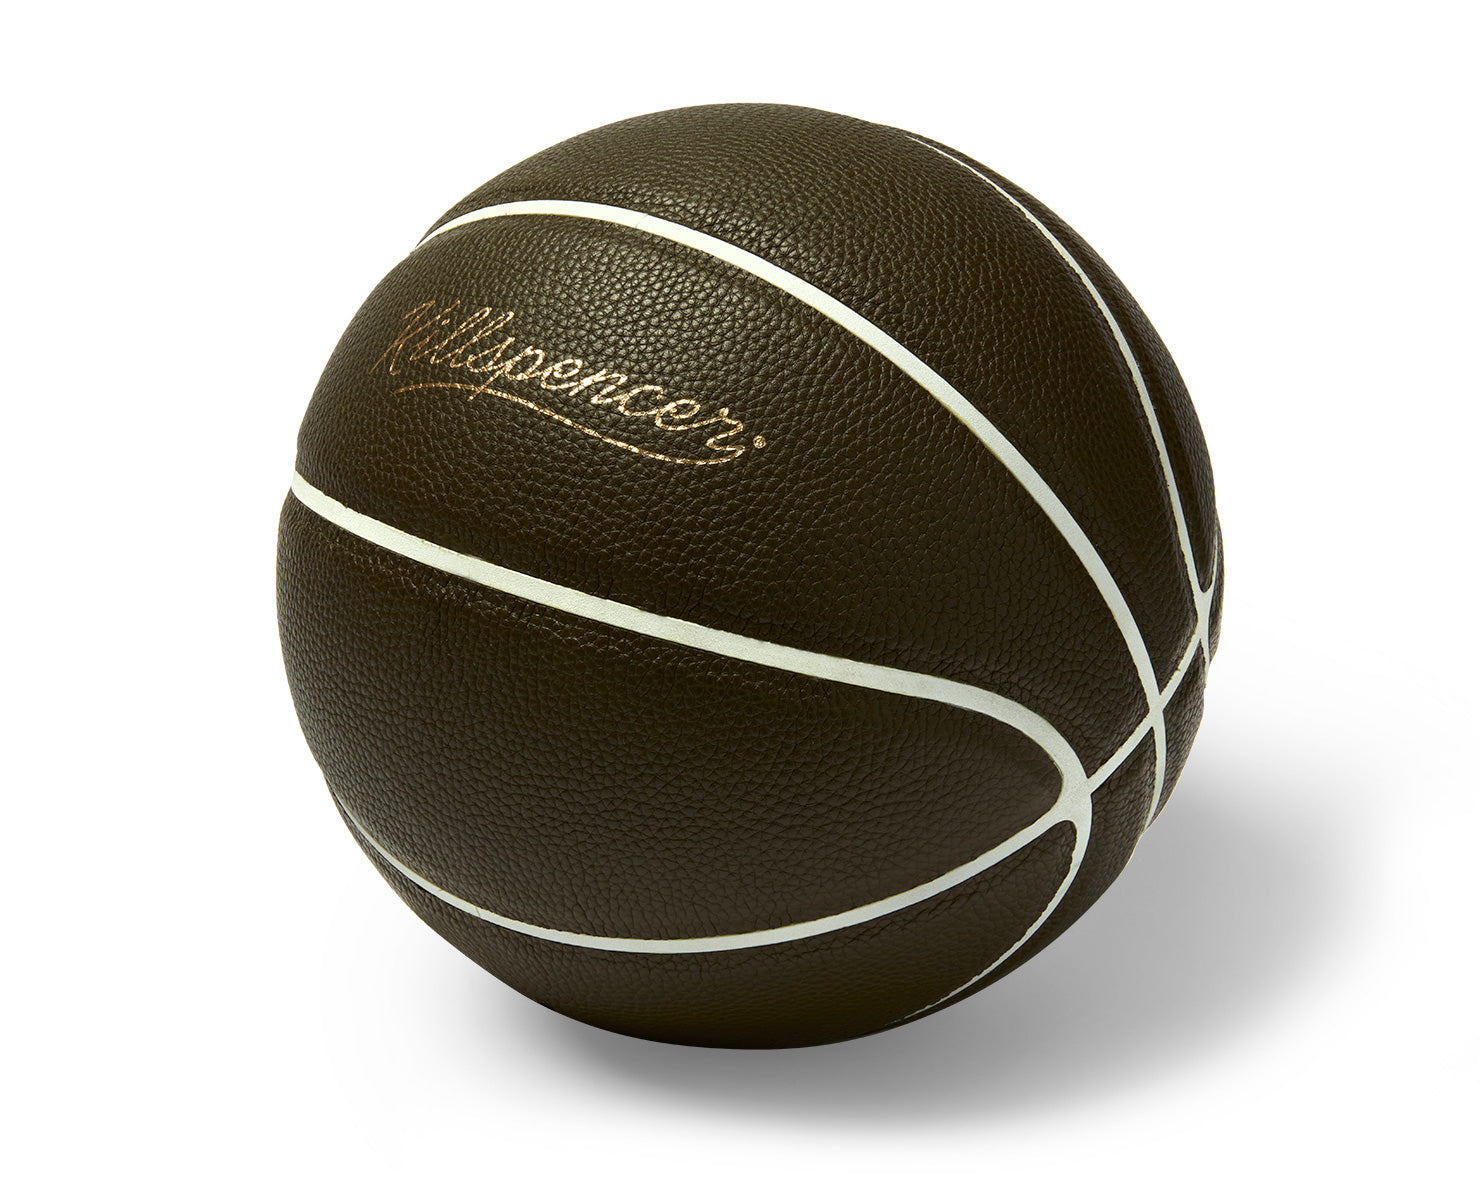 INDOOR FULL-SIZE BASKETBALL | KILLSPENCER® - Army Green Leather with White Grip